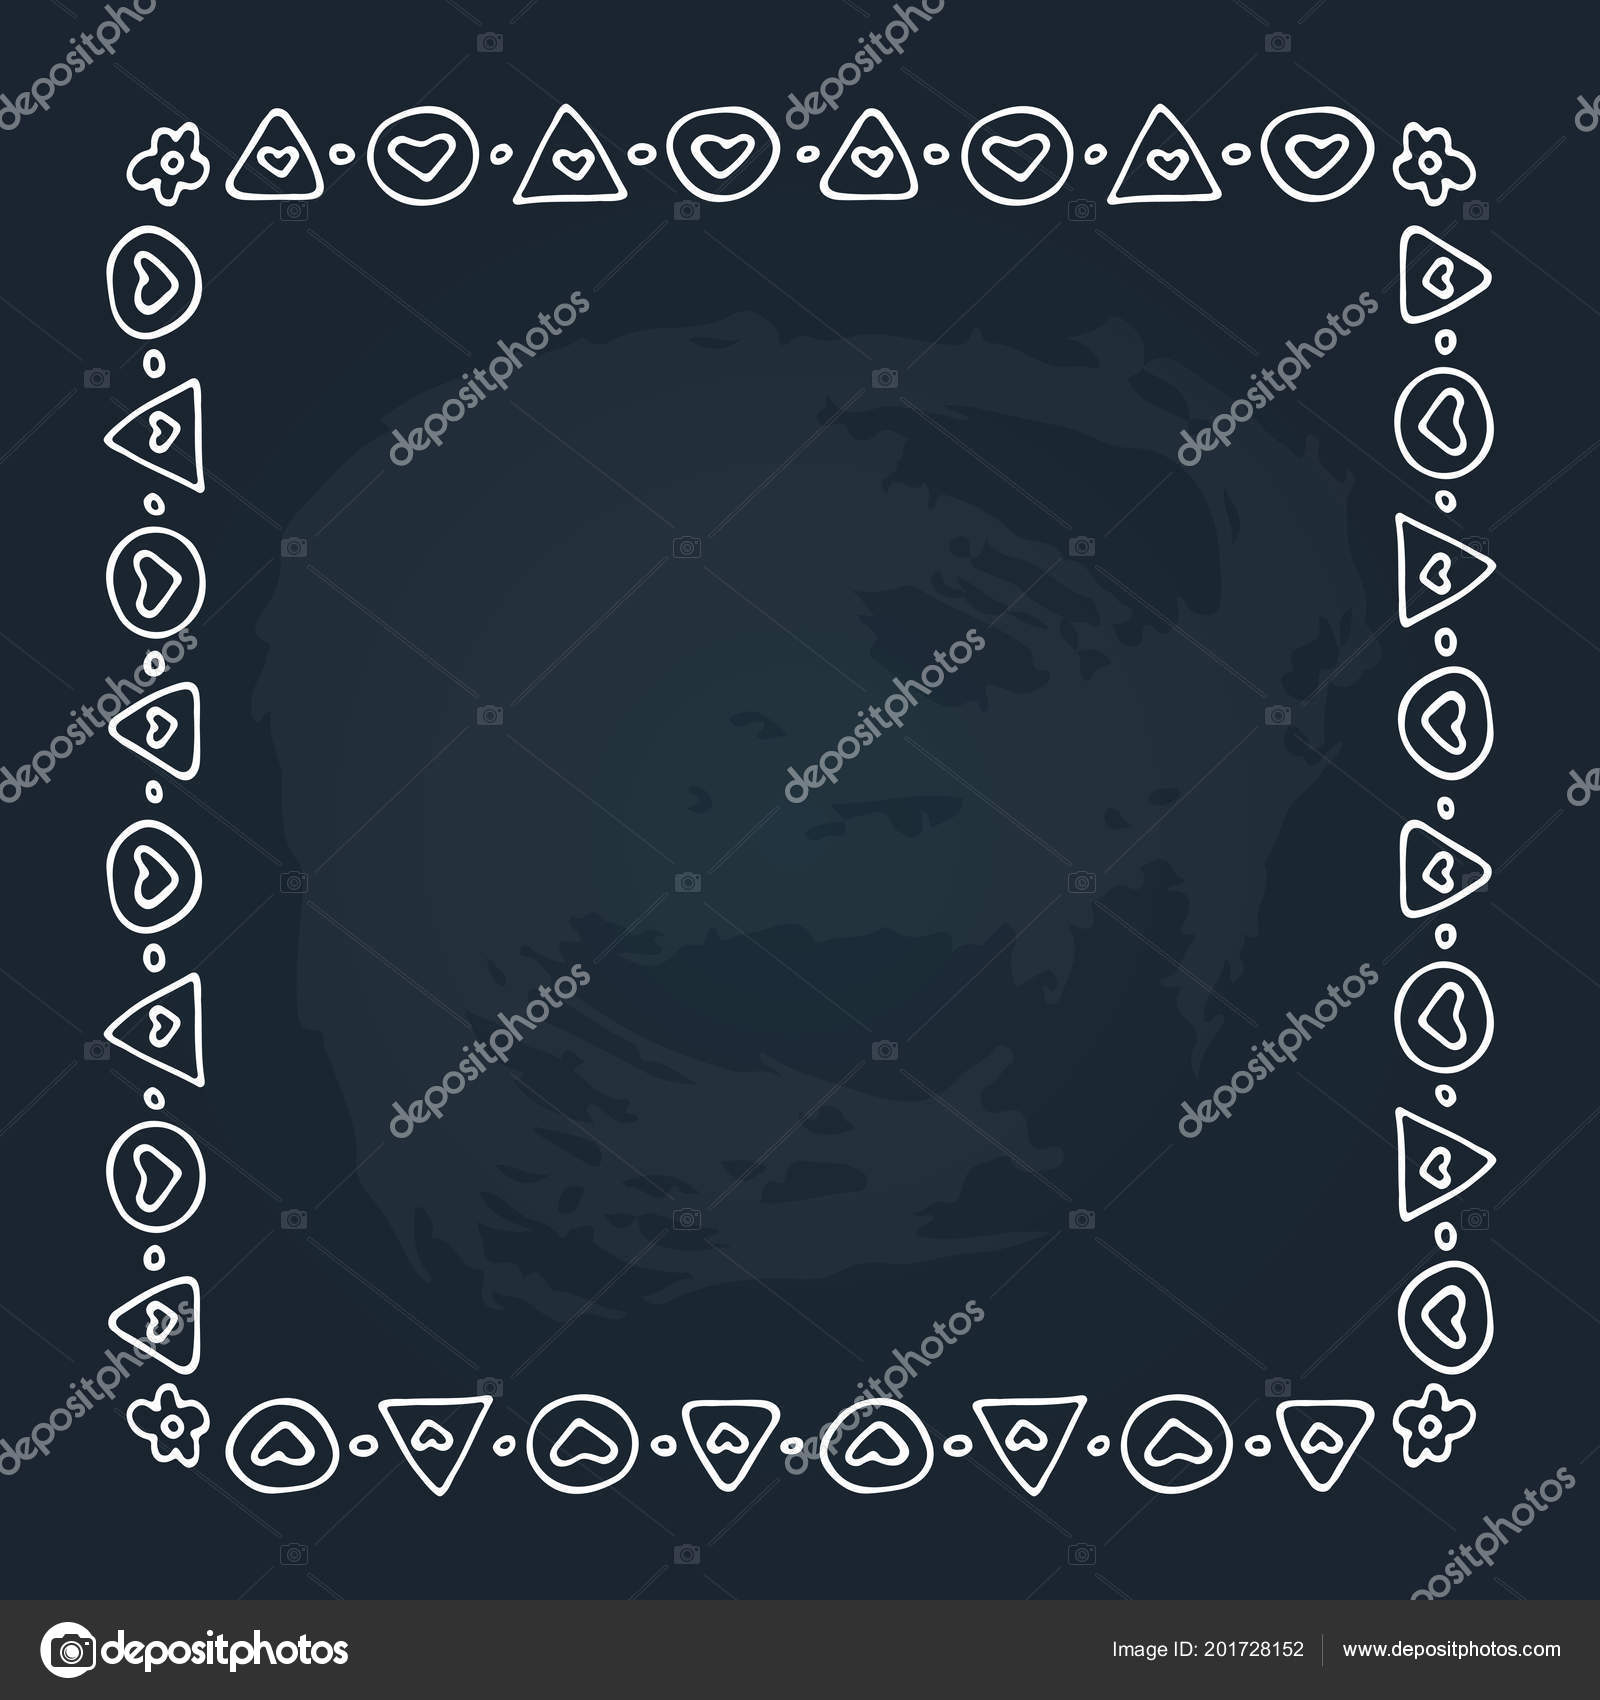 Hand Drawn Romantic Border Hearts Isolated Chalkboard Background Design Element Stock Vector